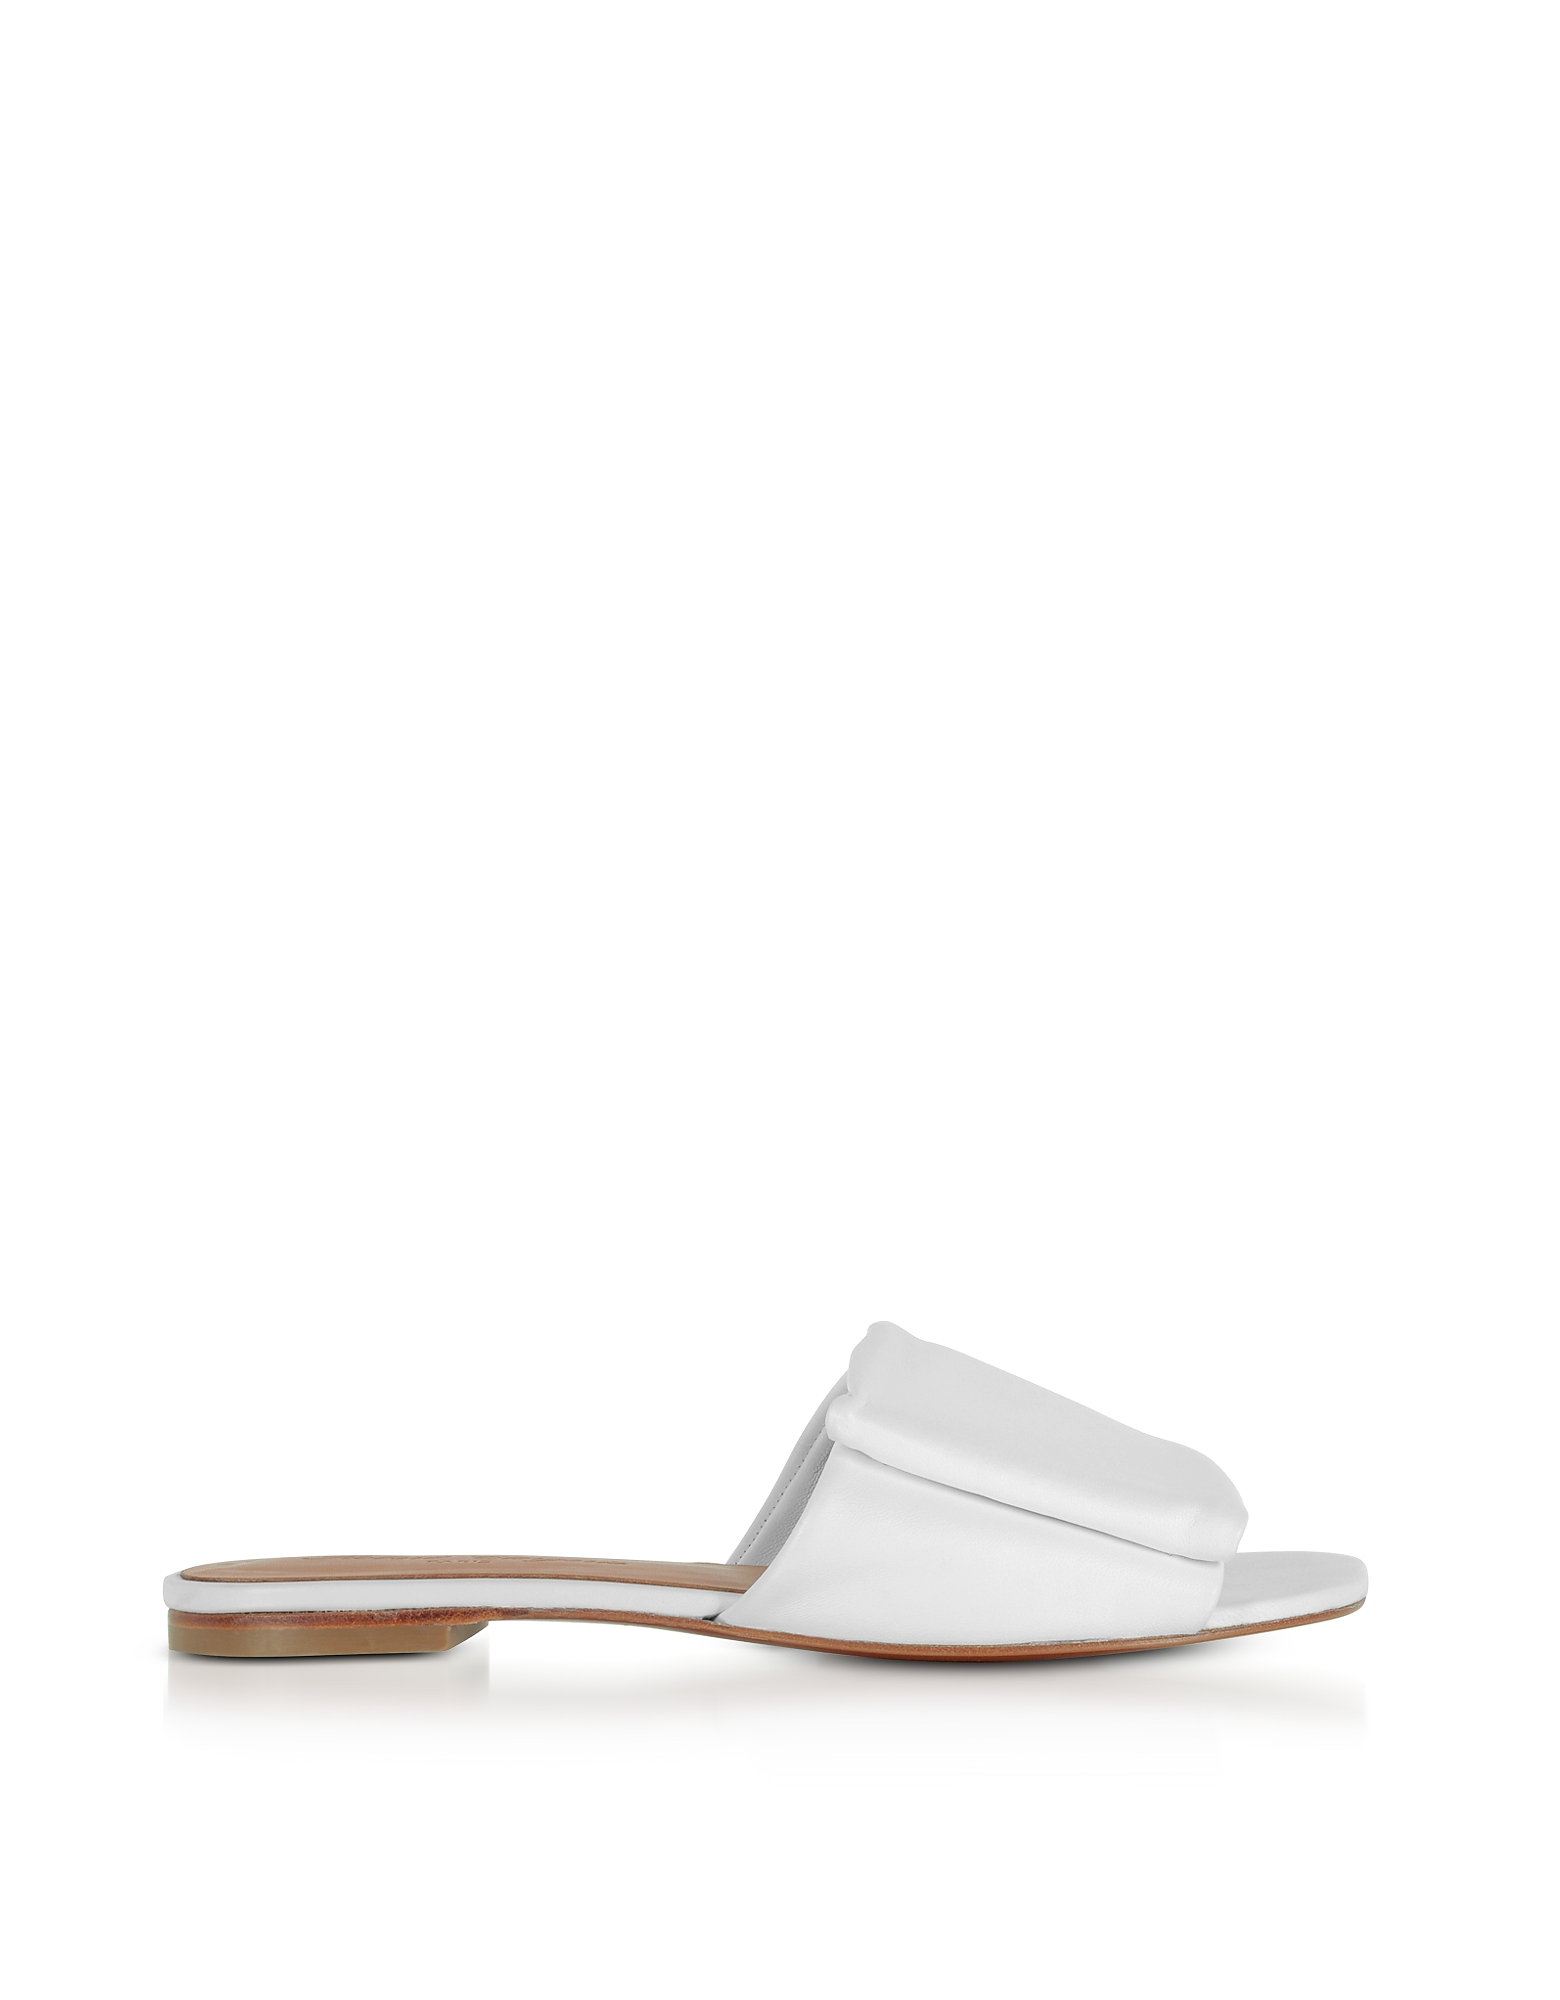 Robert Clergerie Shoes, Igad White Leather Flat Sandals